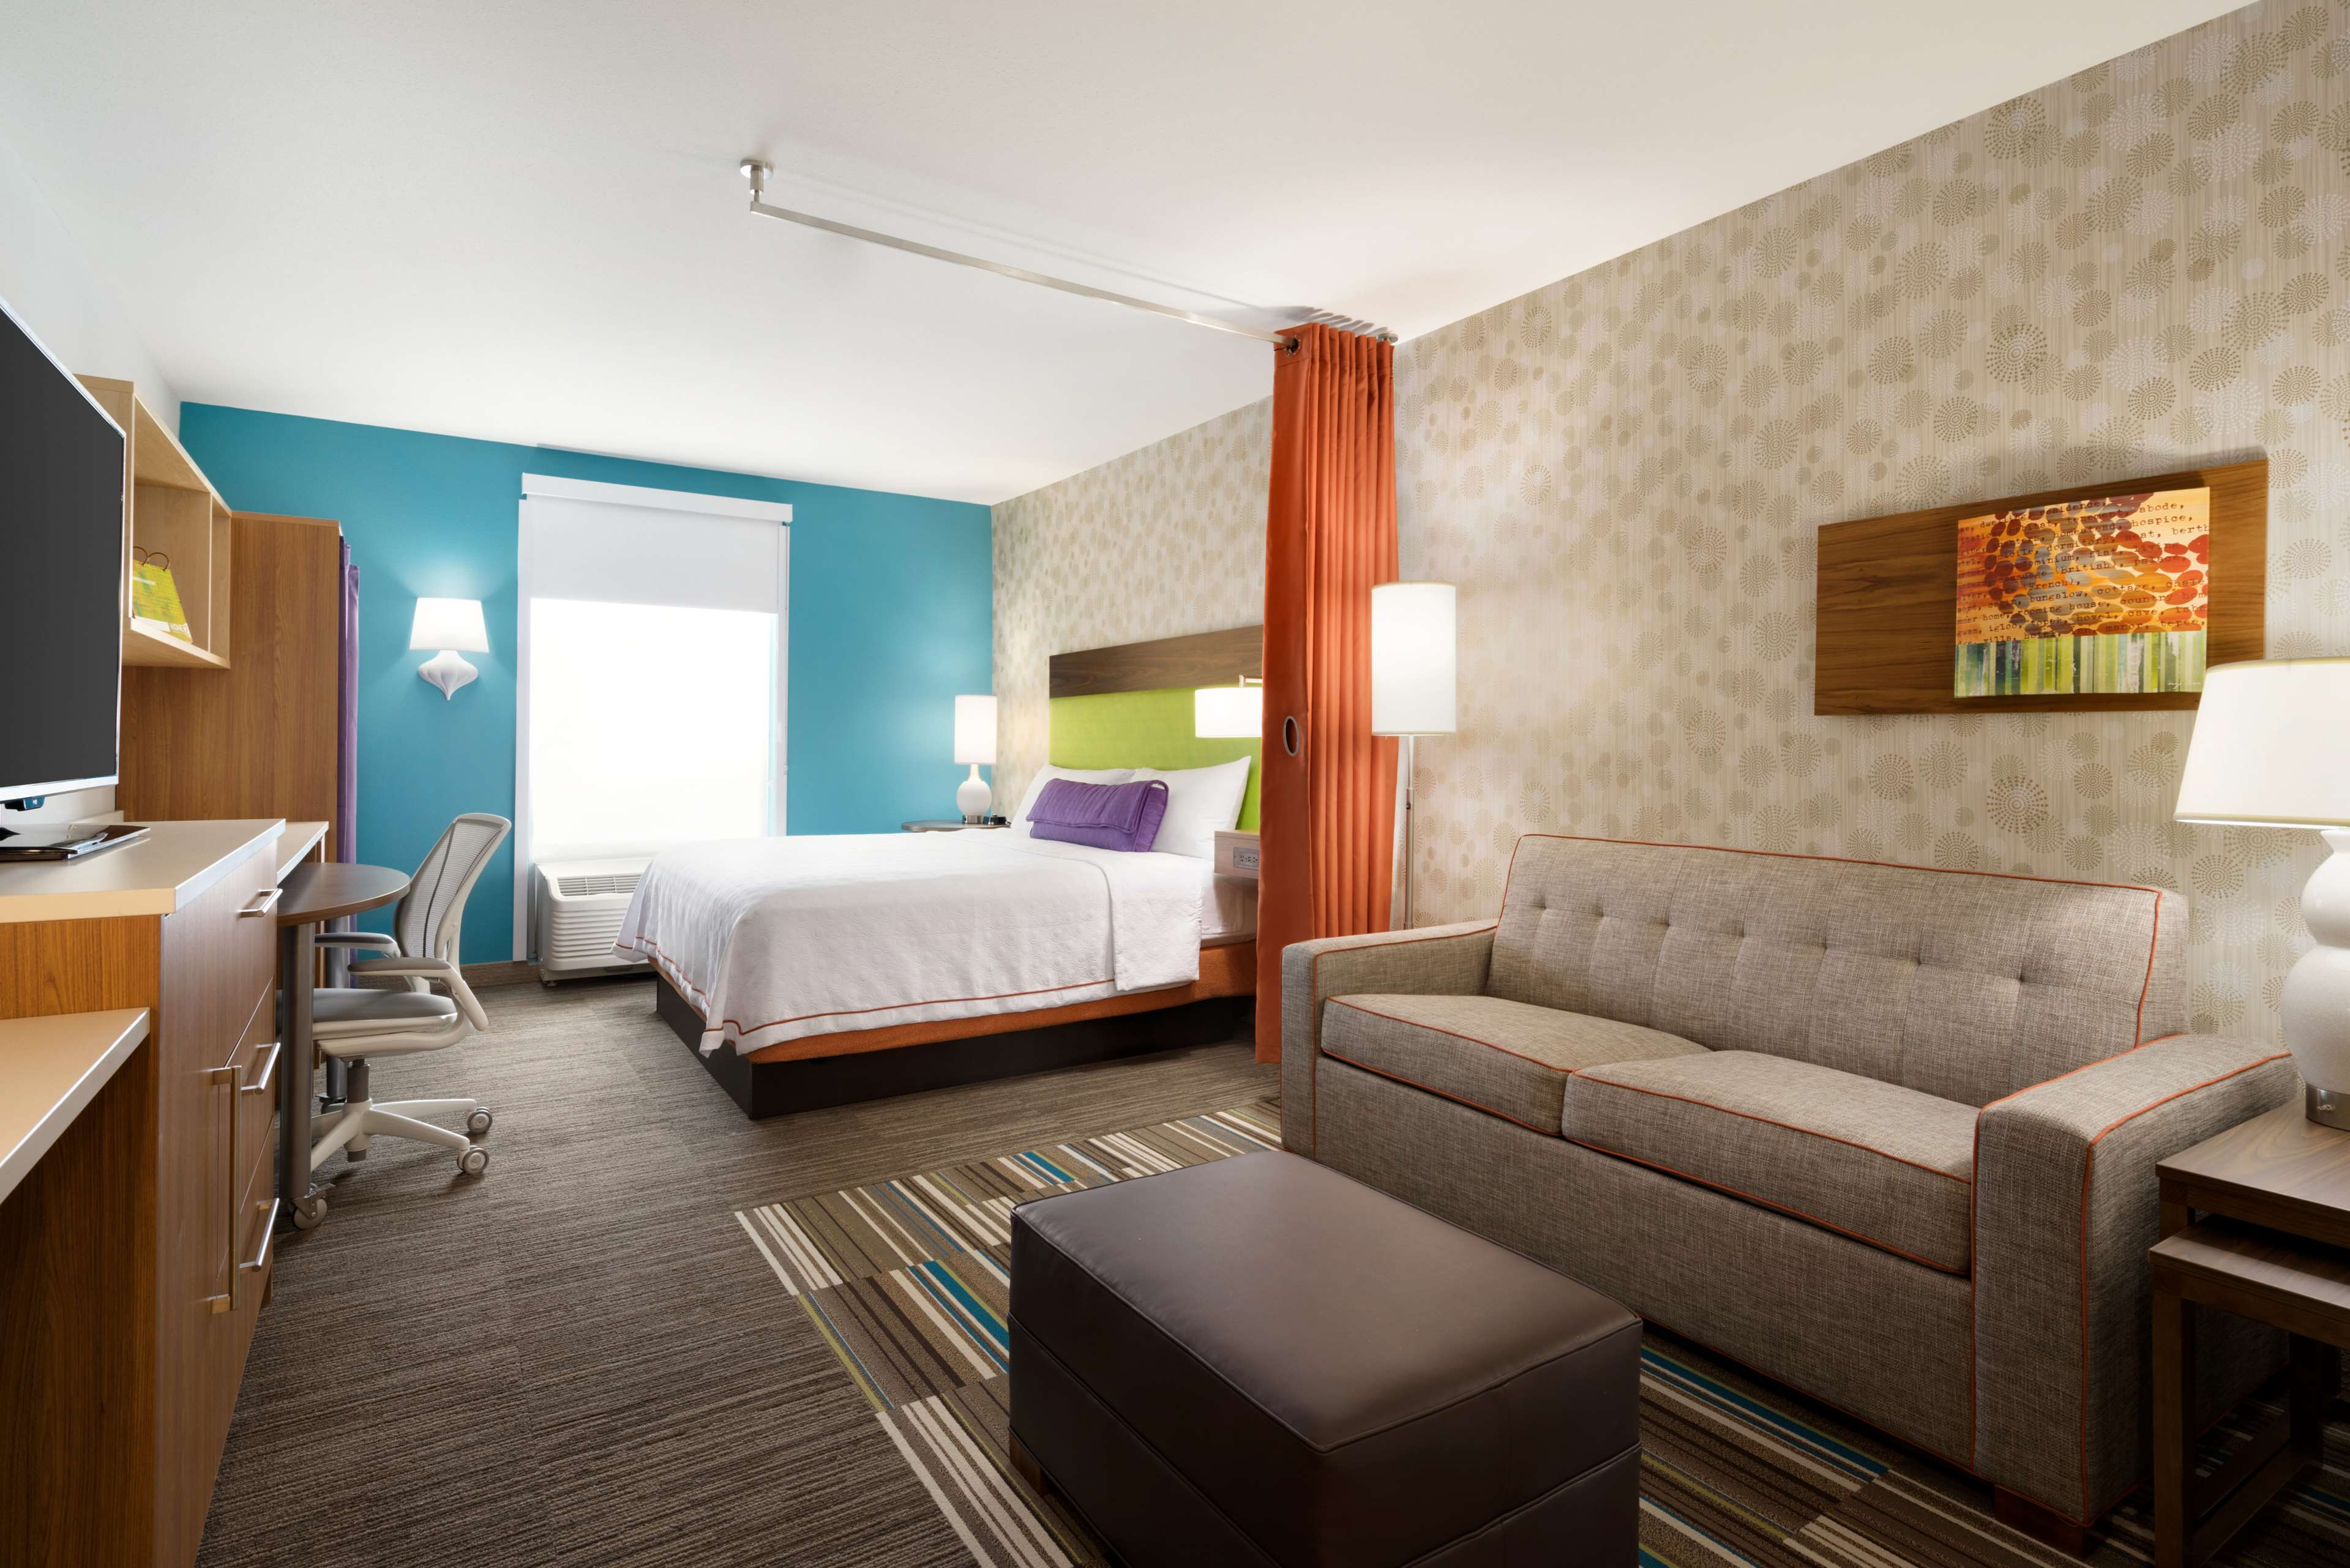 Home2 Suites by Hilton Roanoke image 31